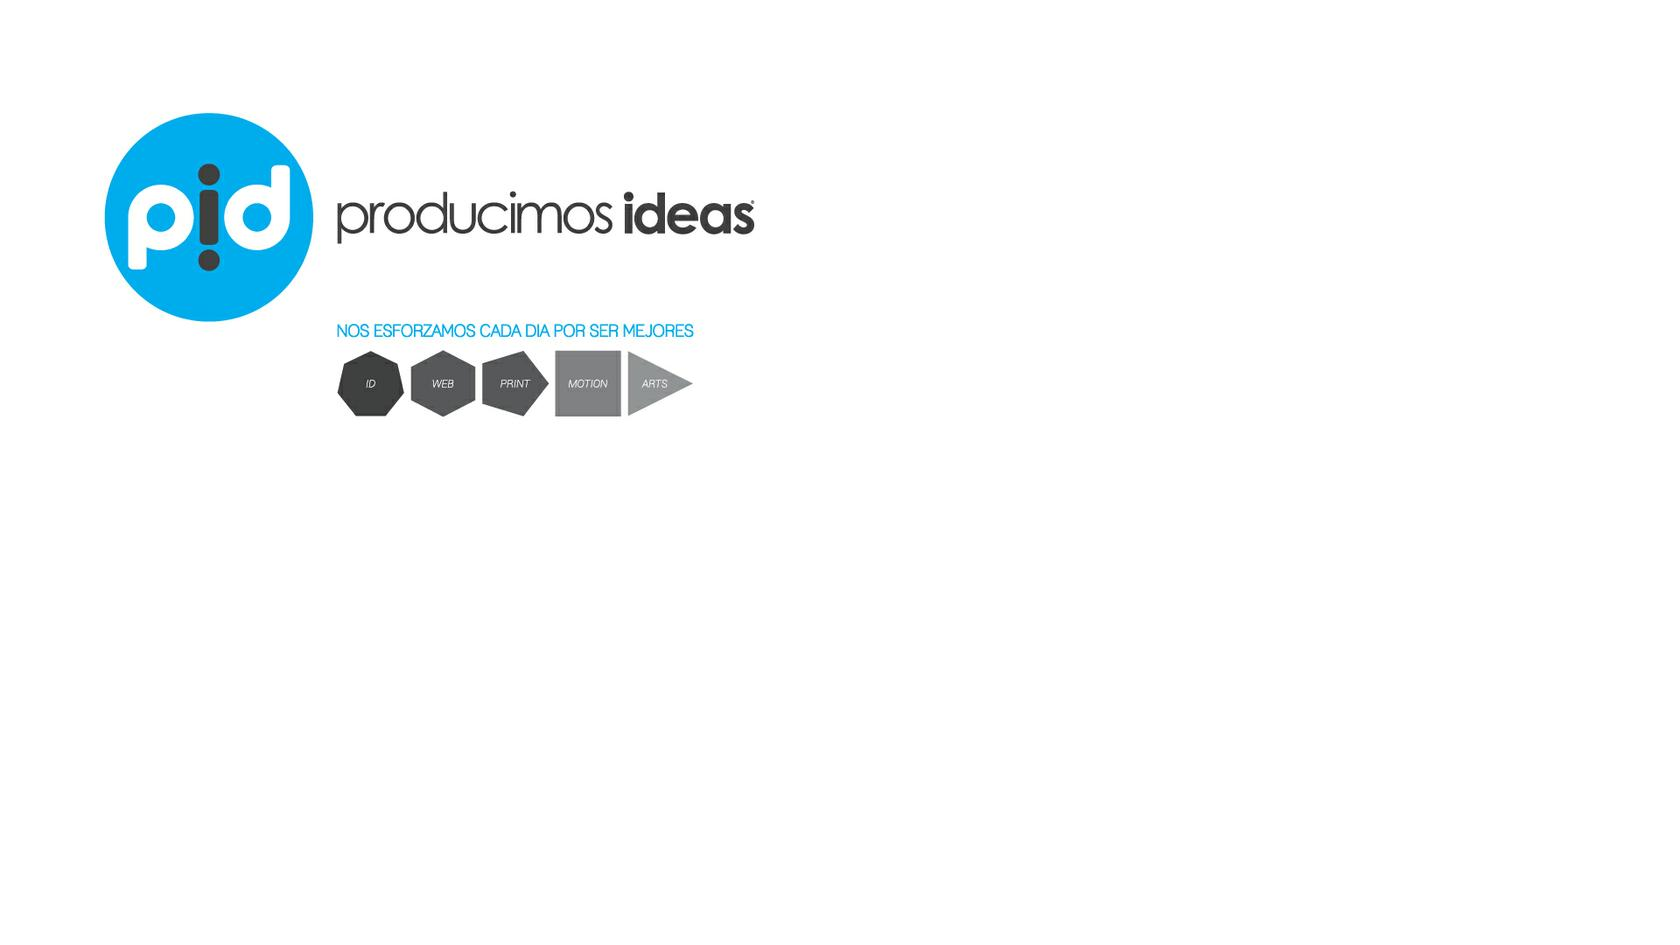 pid producimos ideas